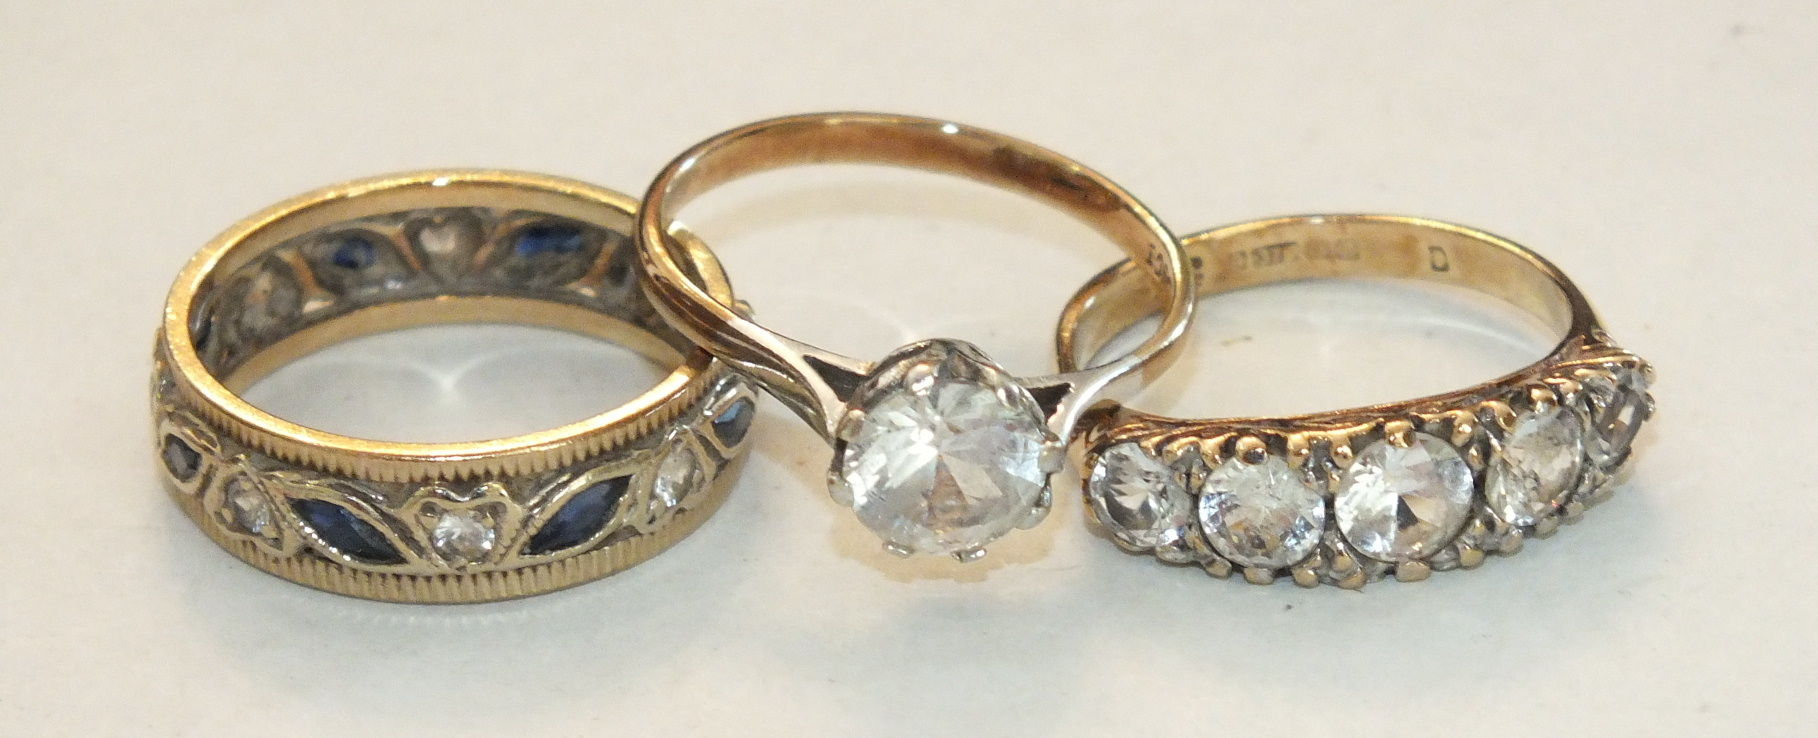 Three 9ct gold rings set synthetic stones, sizes N-O, 8.6g, (3).